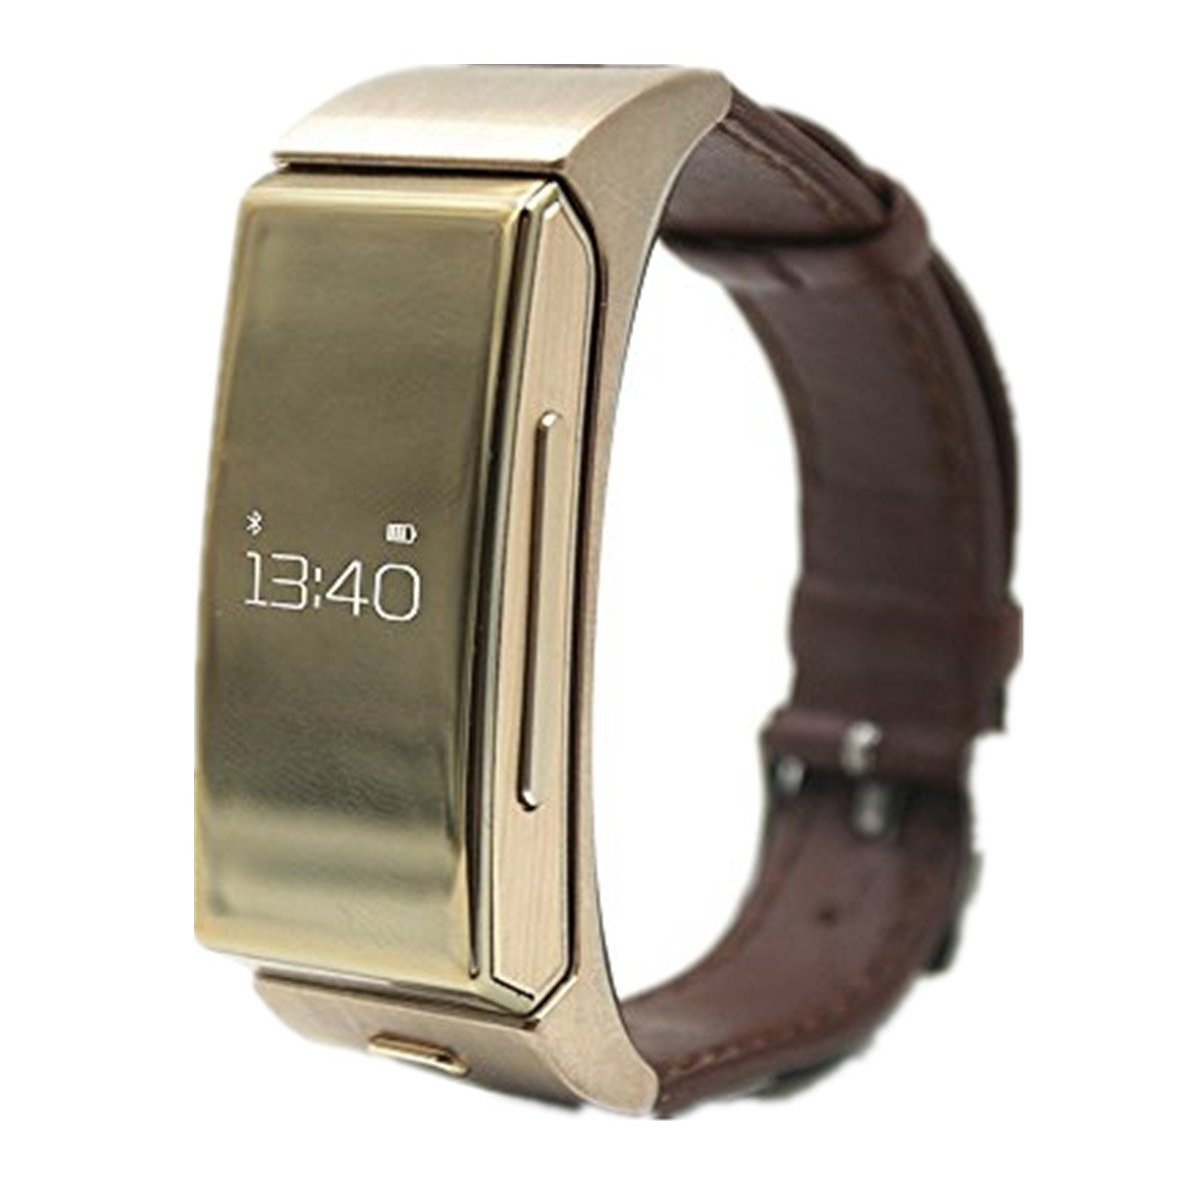 Bluetooth Smart Watch - TOOGOO(R) SmartWatch U20 Bluetooth & Headset Personal Smart Wearable Bracelet Heartrate Monitor Remote Camera for IOS & Android Smartphone Golden